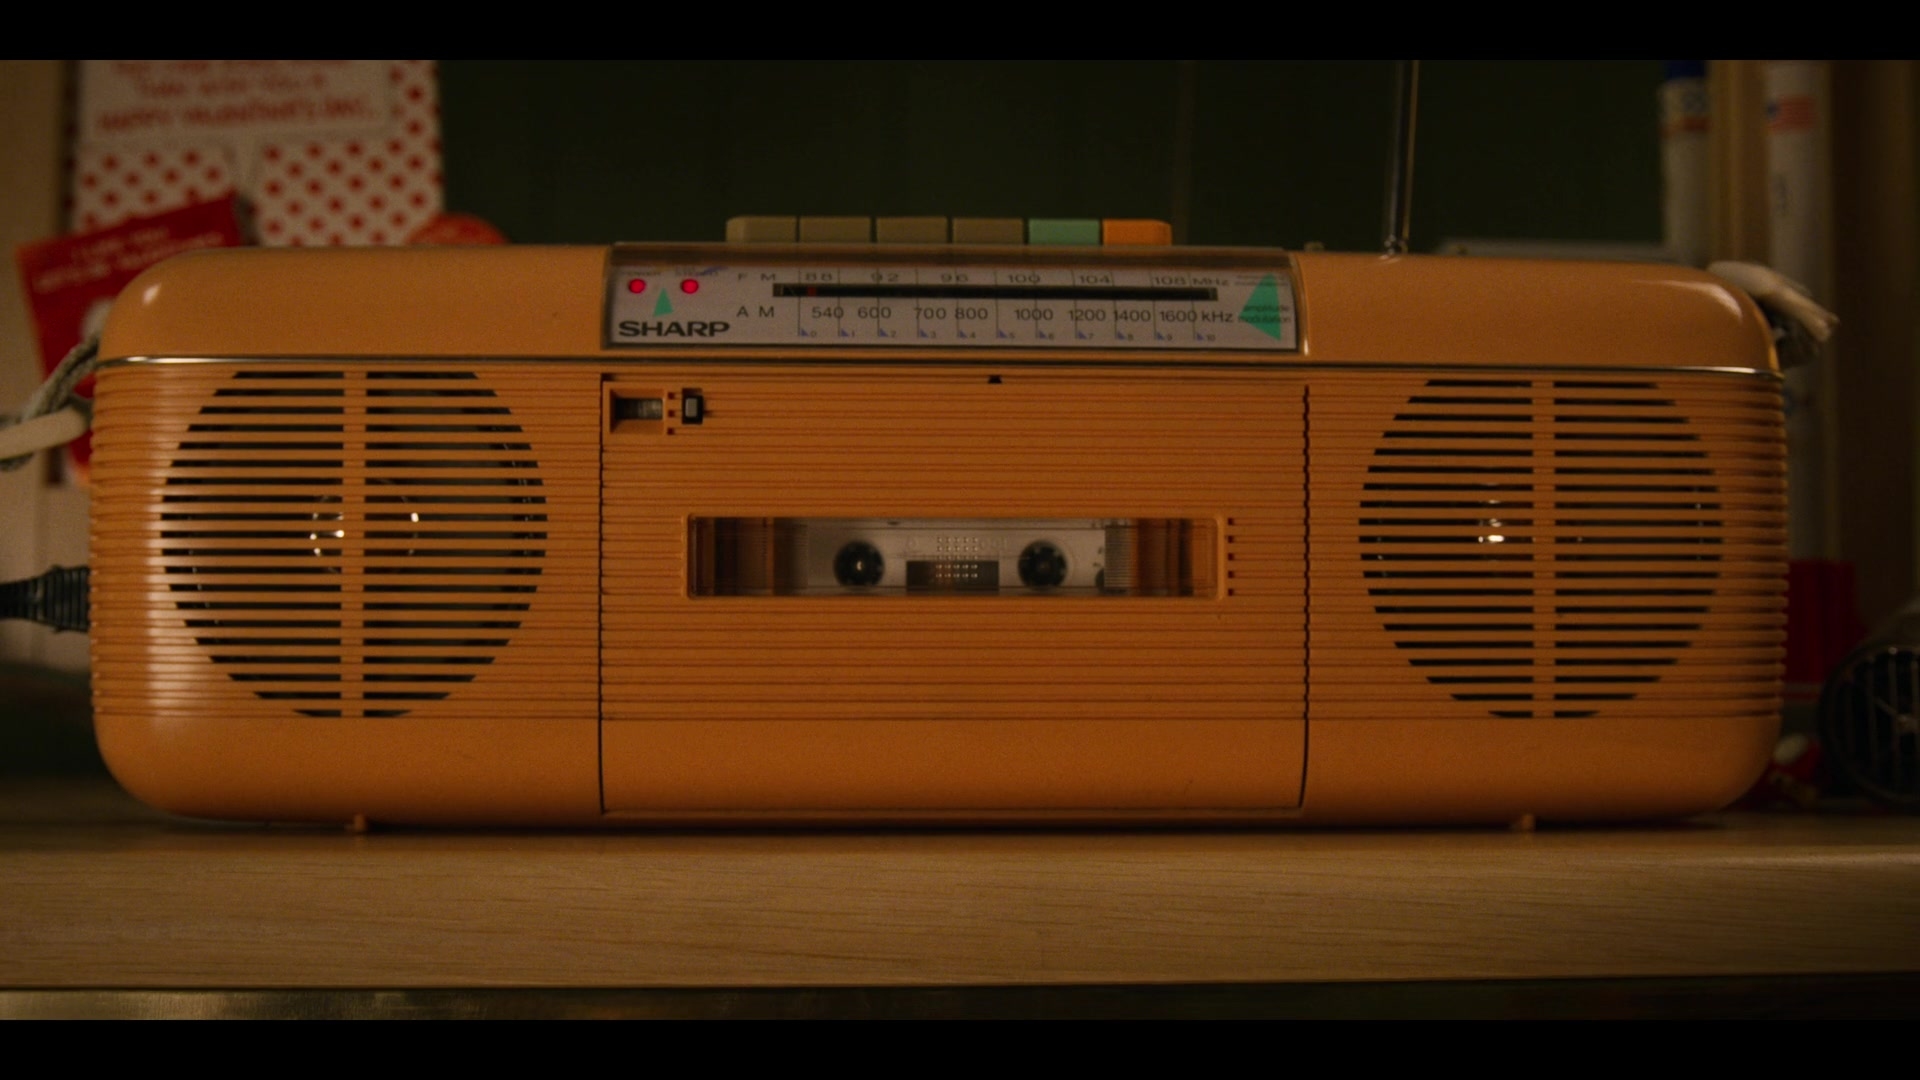 Sharp-Yellow-Cassette-Tape-Recorder-in-Stranger-Things.jpg